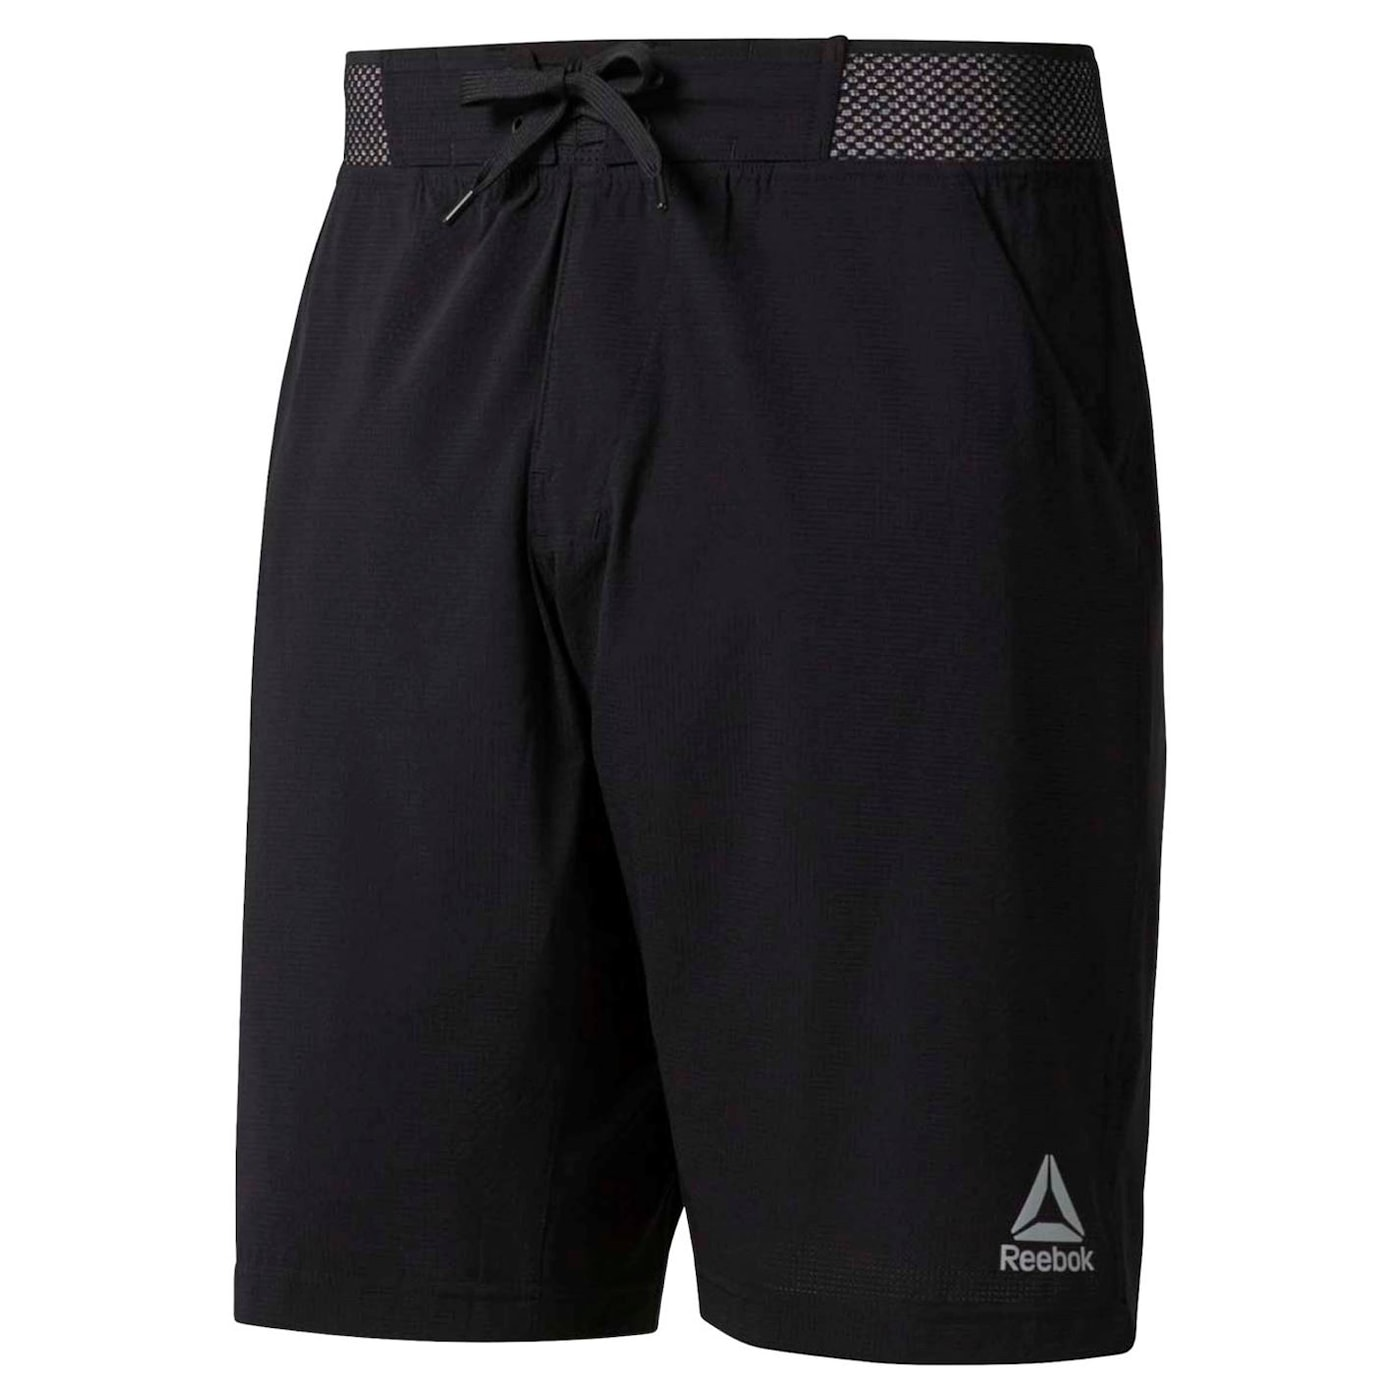 Reebok Epic Knitted Waistband Shorts Mens